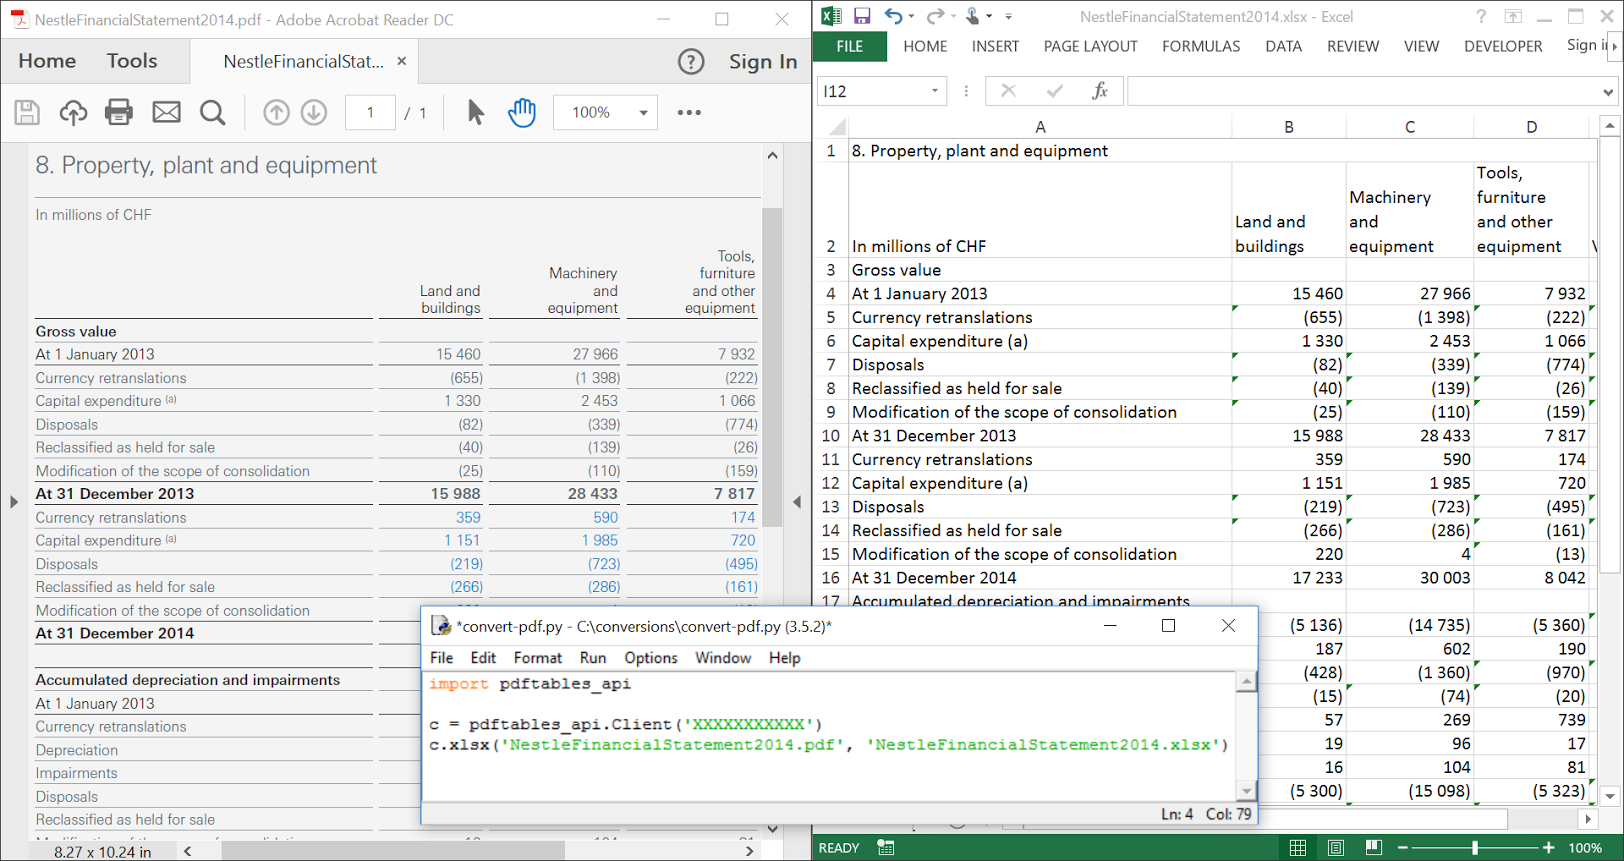 Convert Pdf Image To Excel Spreadsheet Within Convert Pdf To Excel, Csv Or Xml With Python — Pdftables